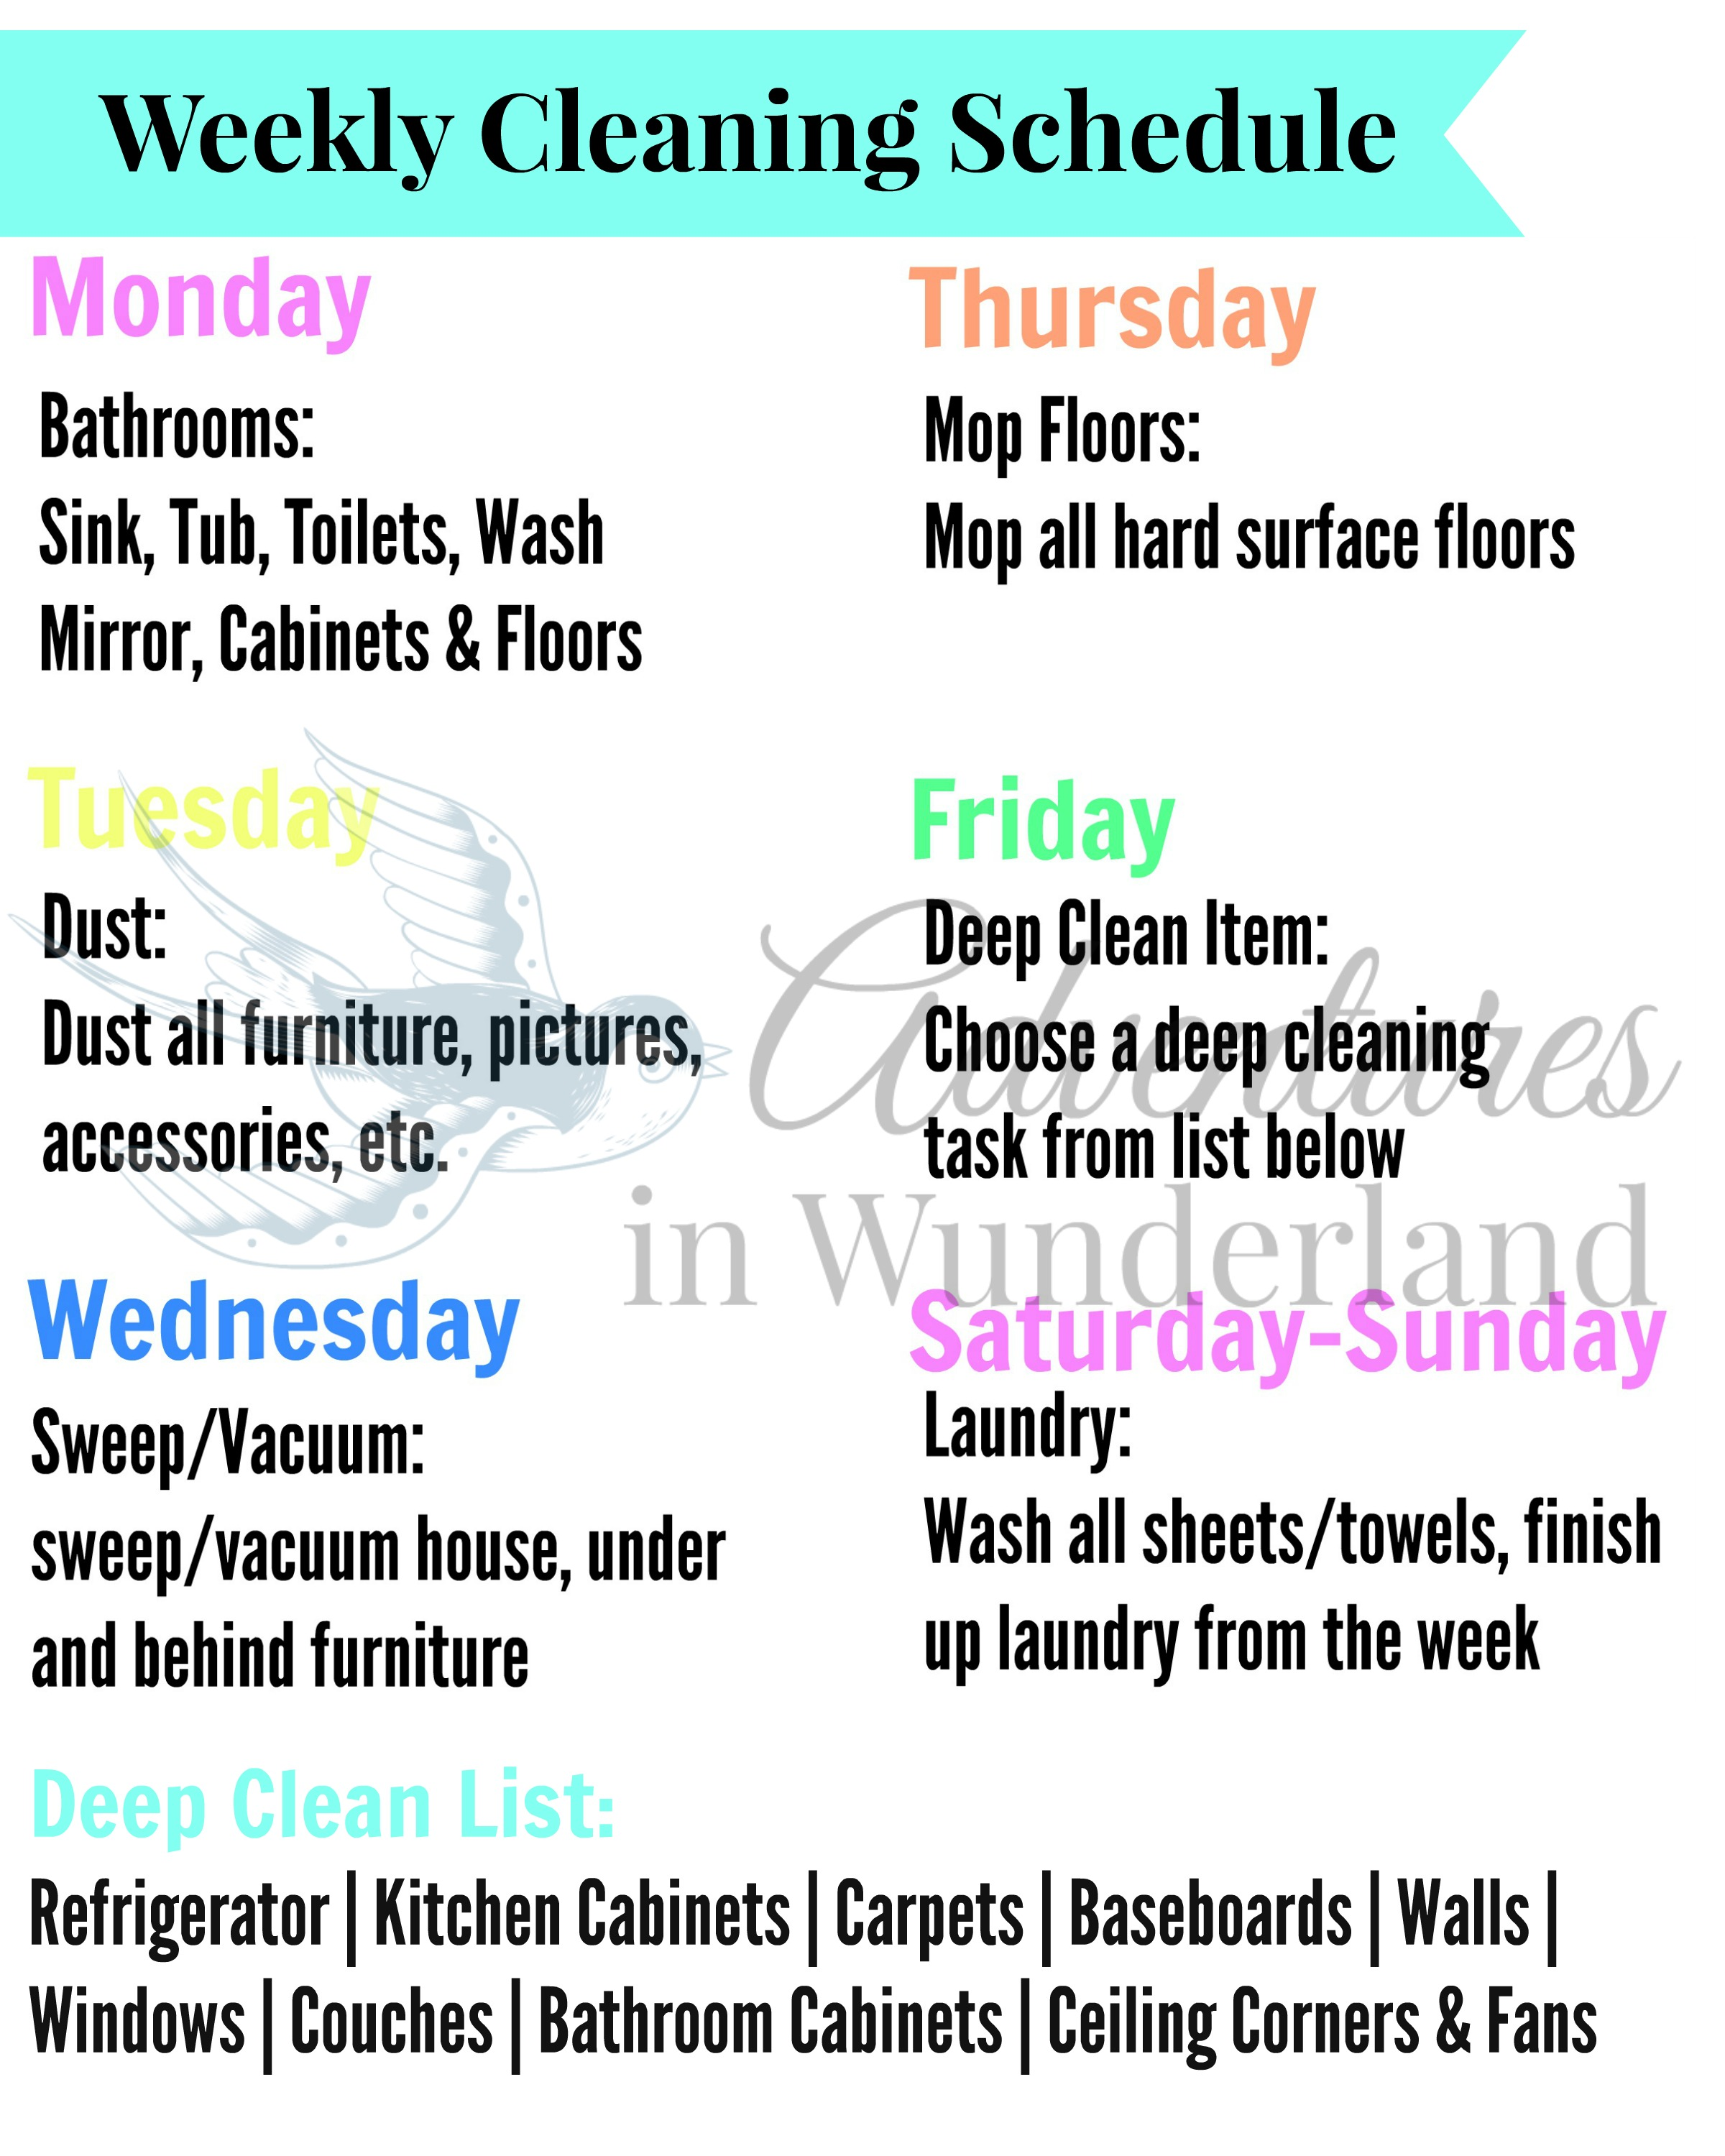 Using A Weekly Cleaning Schedule To Stay On Track